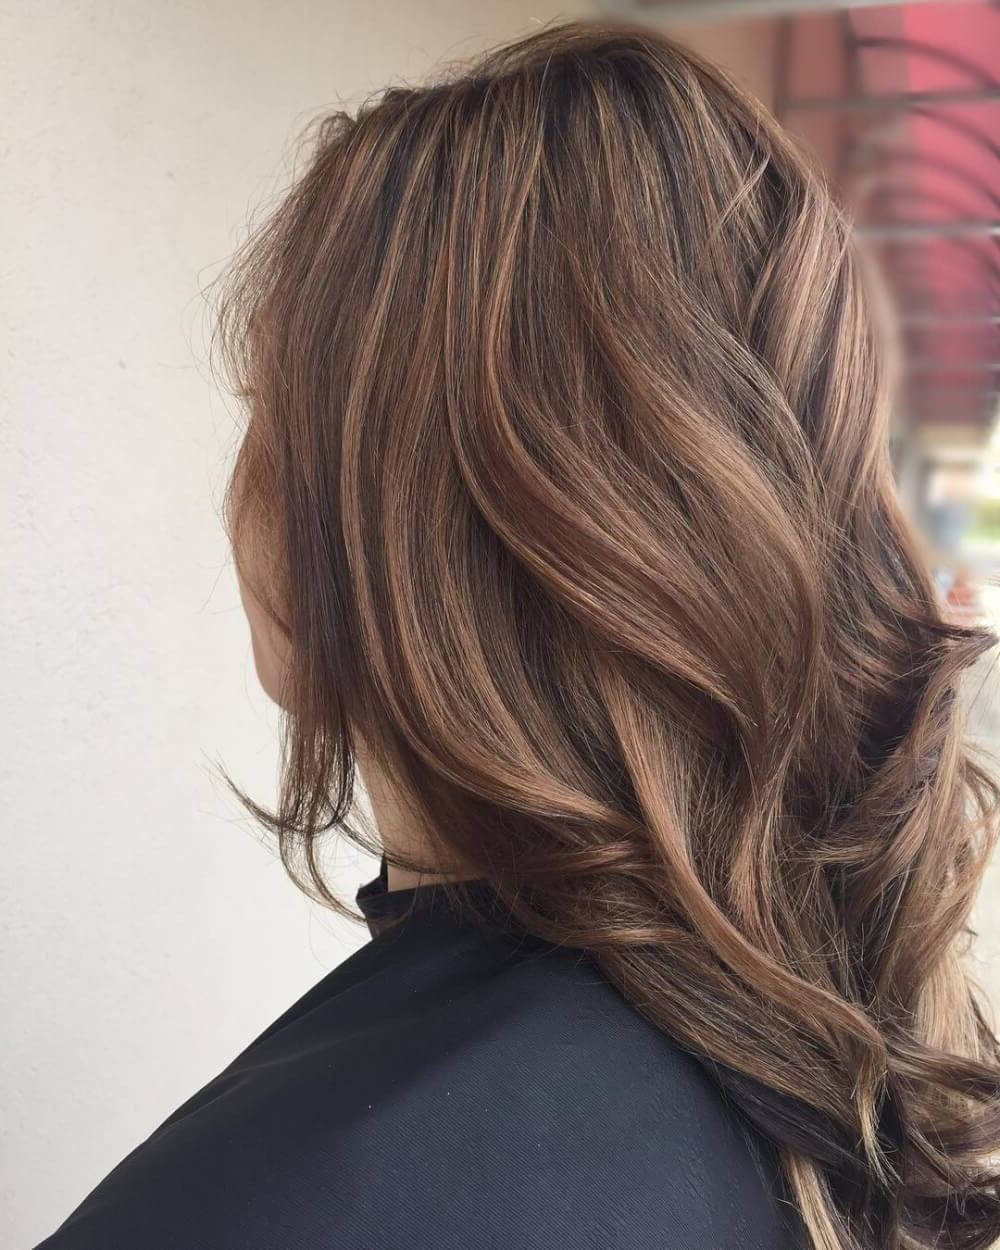 36 Light Brown Hair Colors That Are Blowing Up In 2019 With Well Known Long Layered Light Chocolate Brown Haircuts (View 3 of 20)